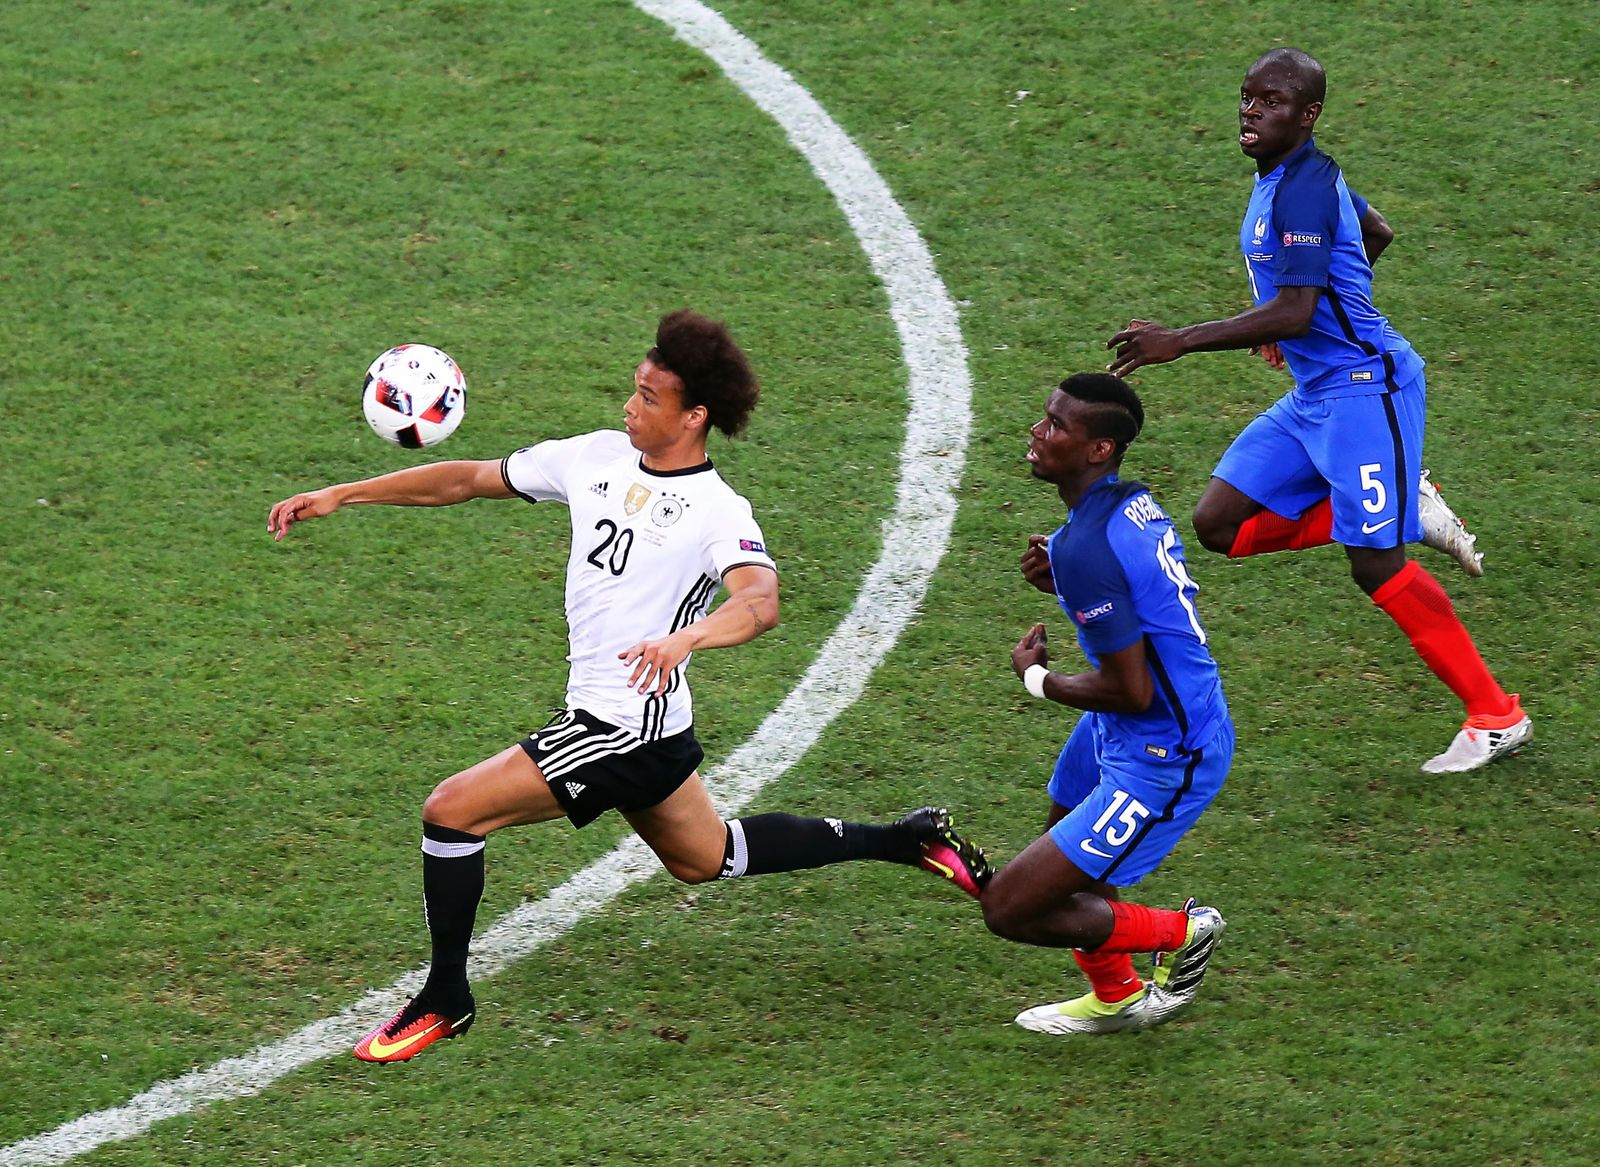 EURO 2016 - Semi final Germany vs France